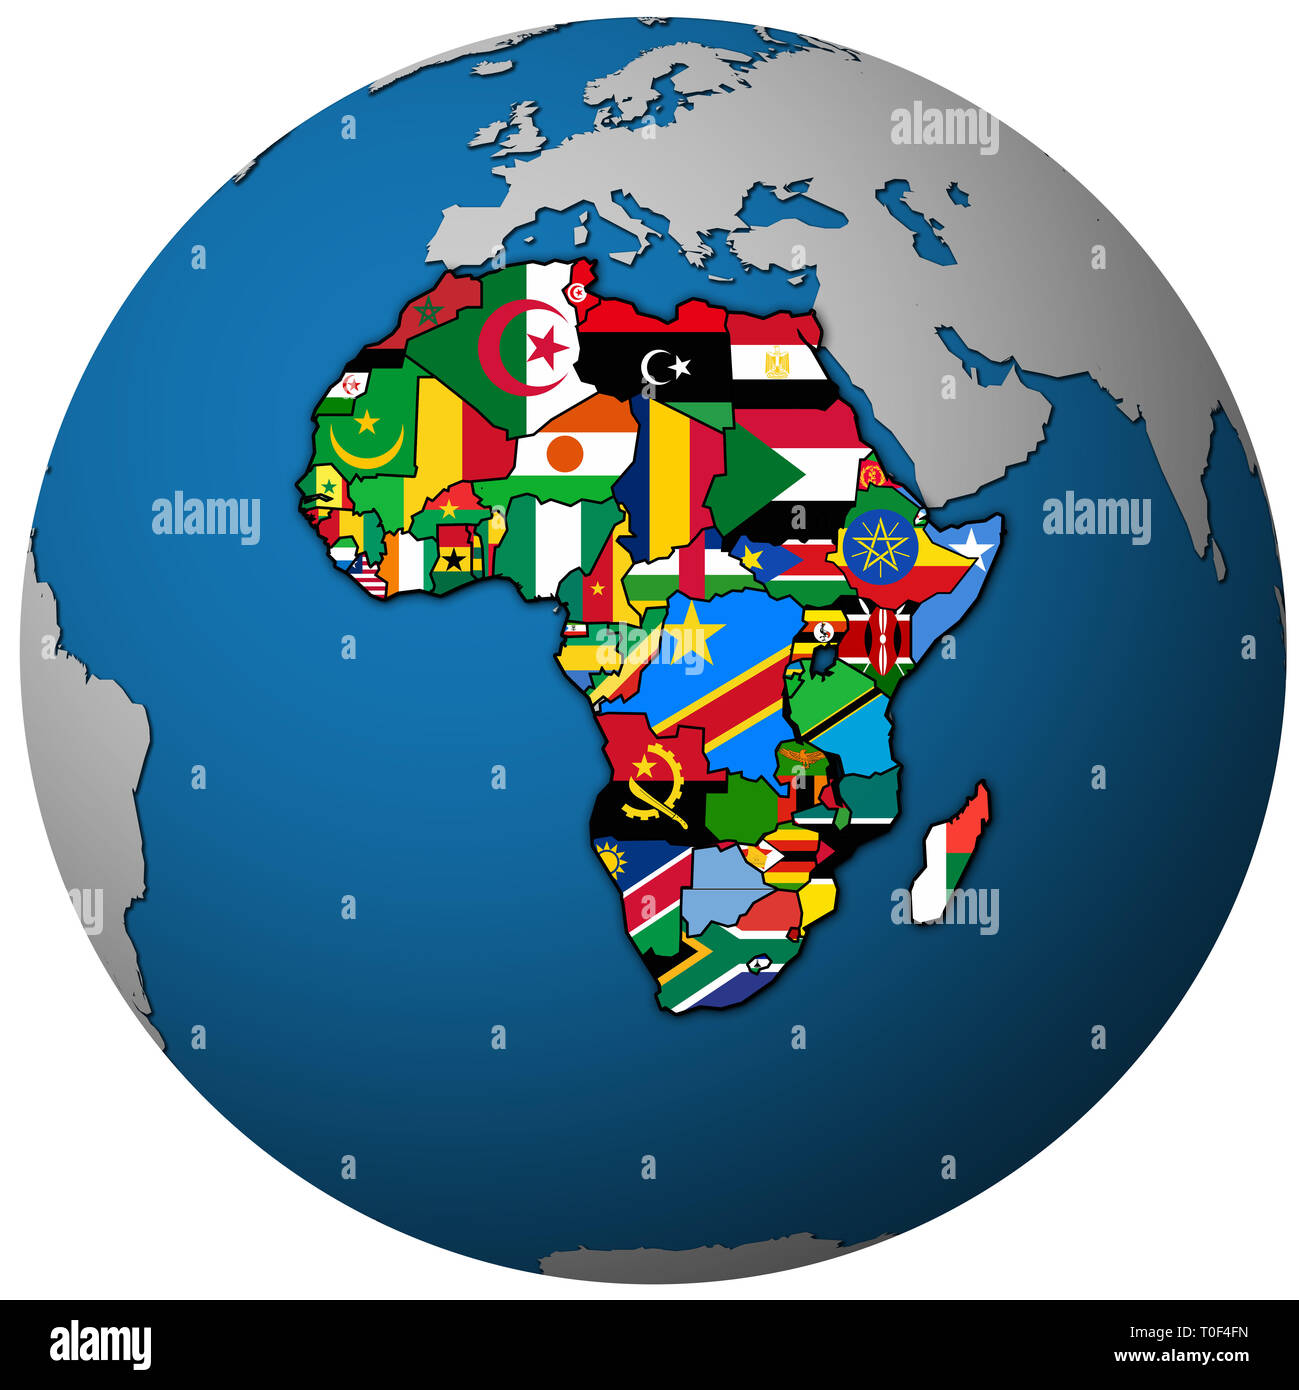 globe map with political map of african union member ... on globe map philippines, globe map asia, globe map norway, globe map europe, globe map world, globe map states, globe map austria, globe map italy, globe map finland, globe map india, globe map art, globe map africa,